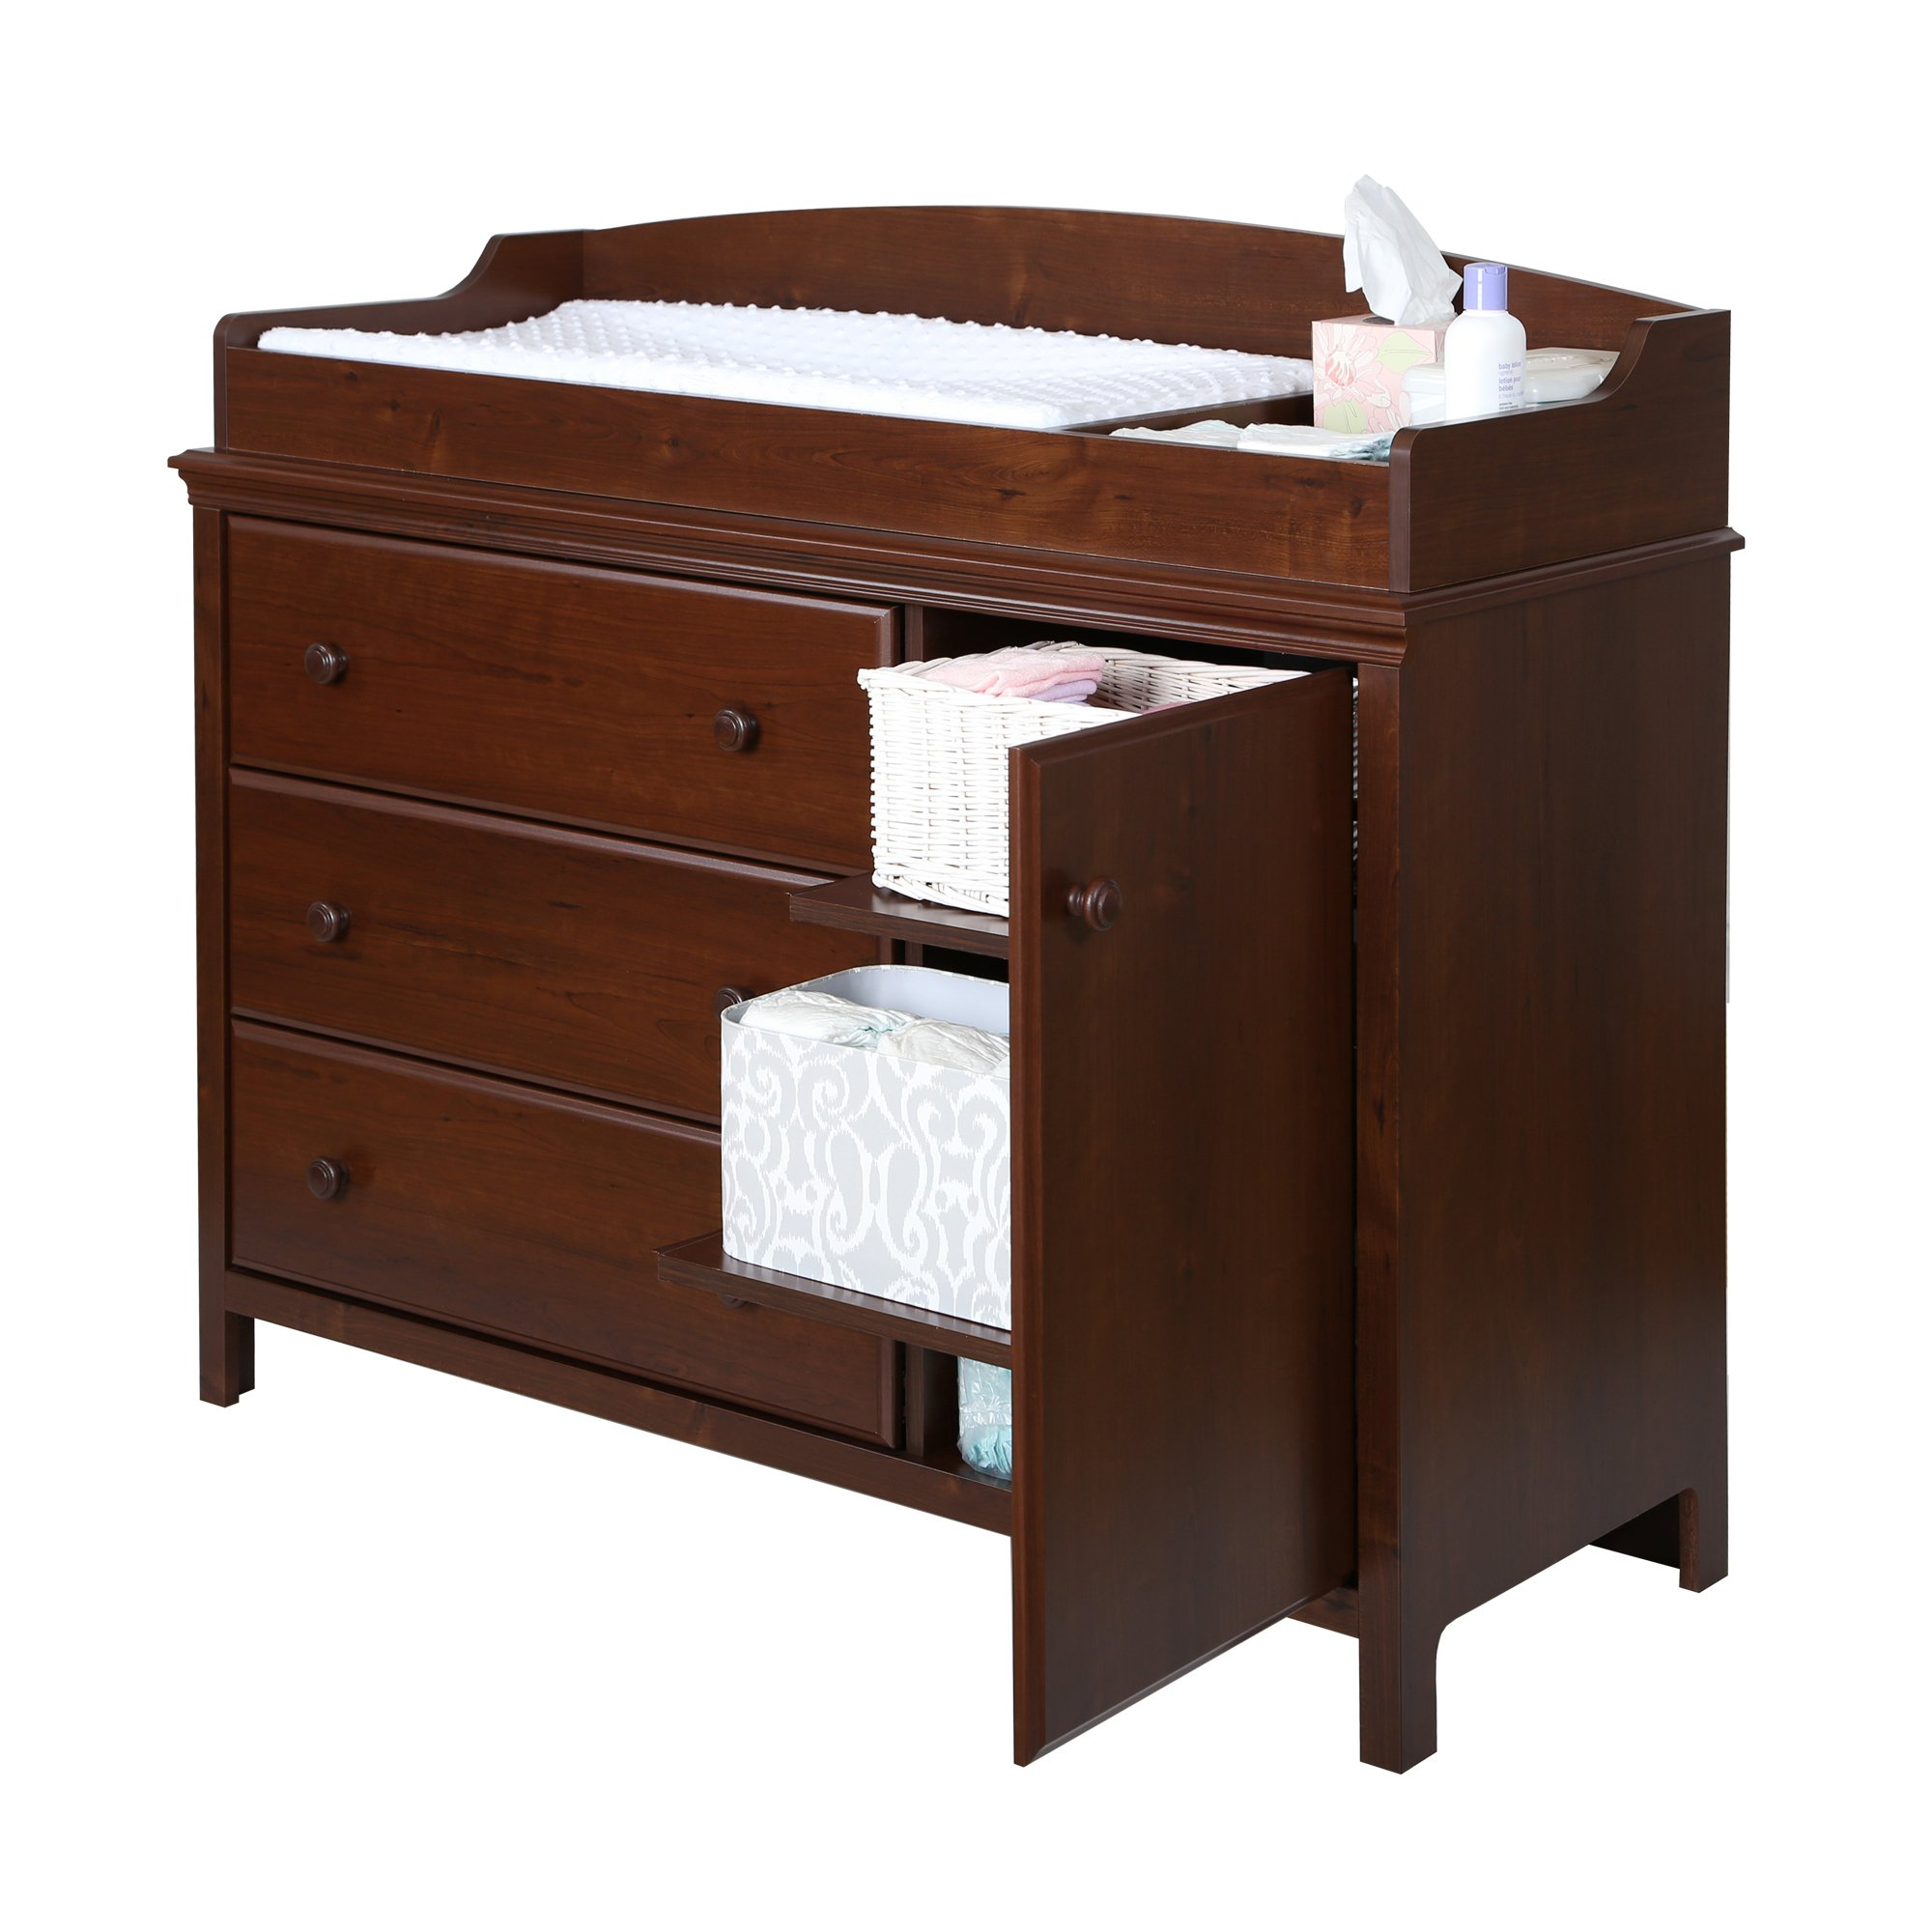 South Shore Cotton Candy Changing Table with Removable Changing Station, Sumptuous Cherry by South Shore (Image #1)